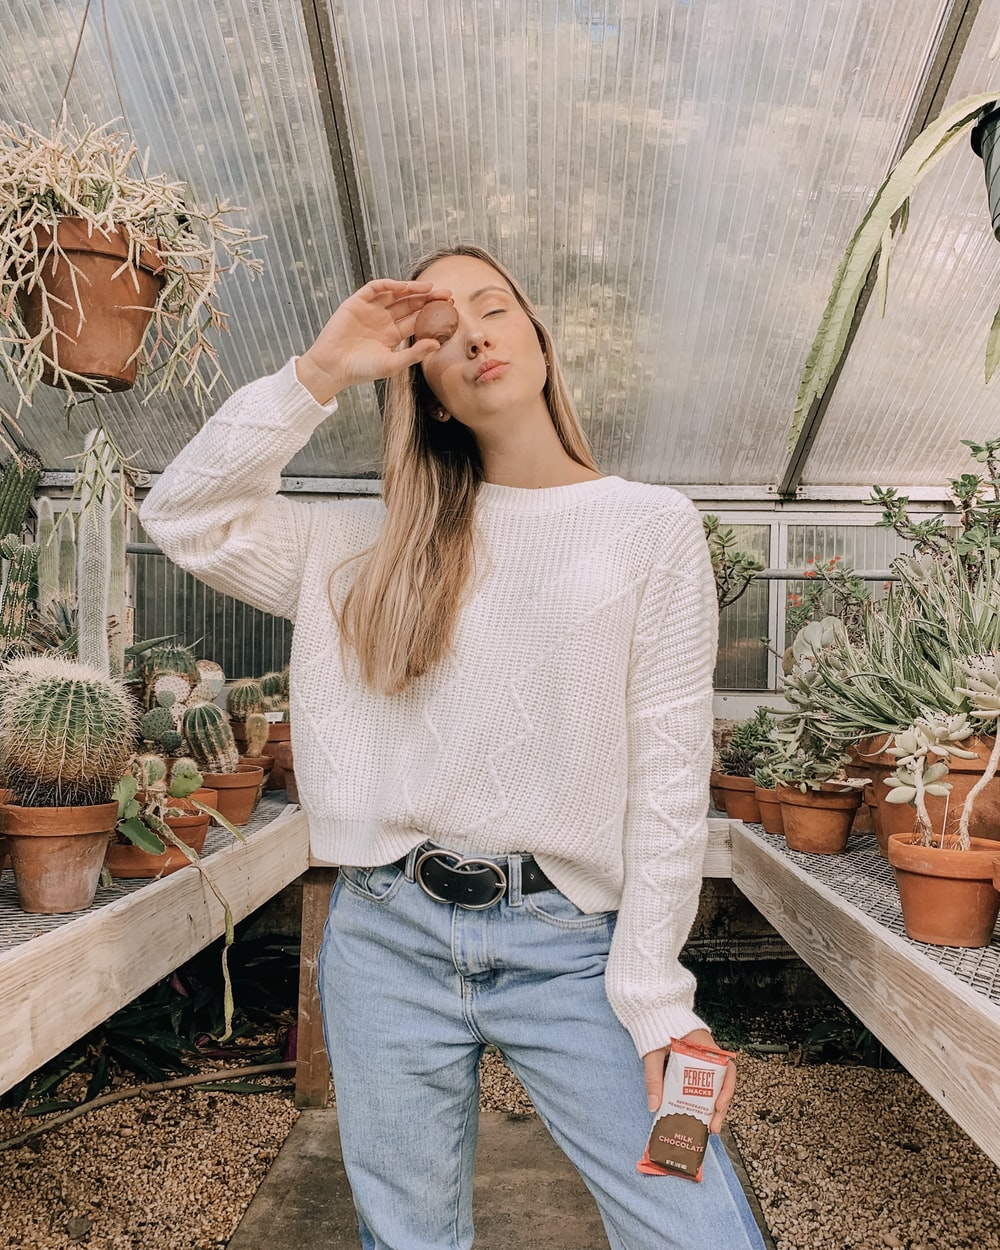 woman in white sweater and blue denim jeans standing near plants